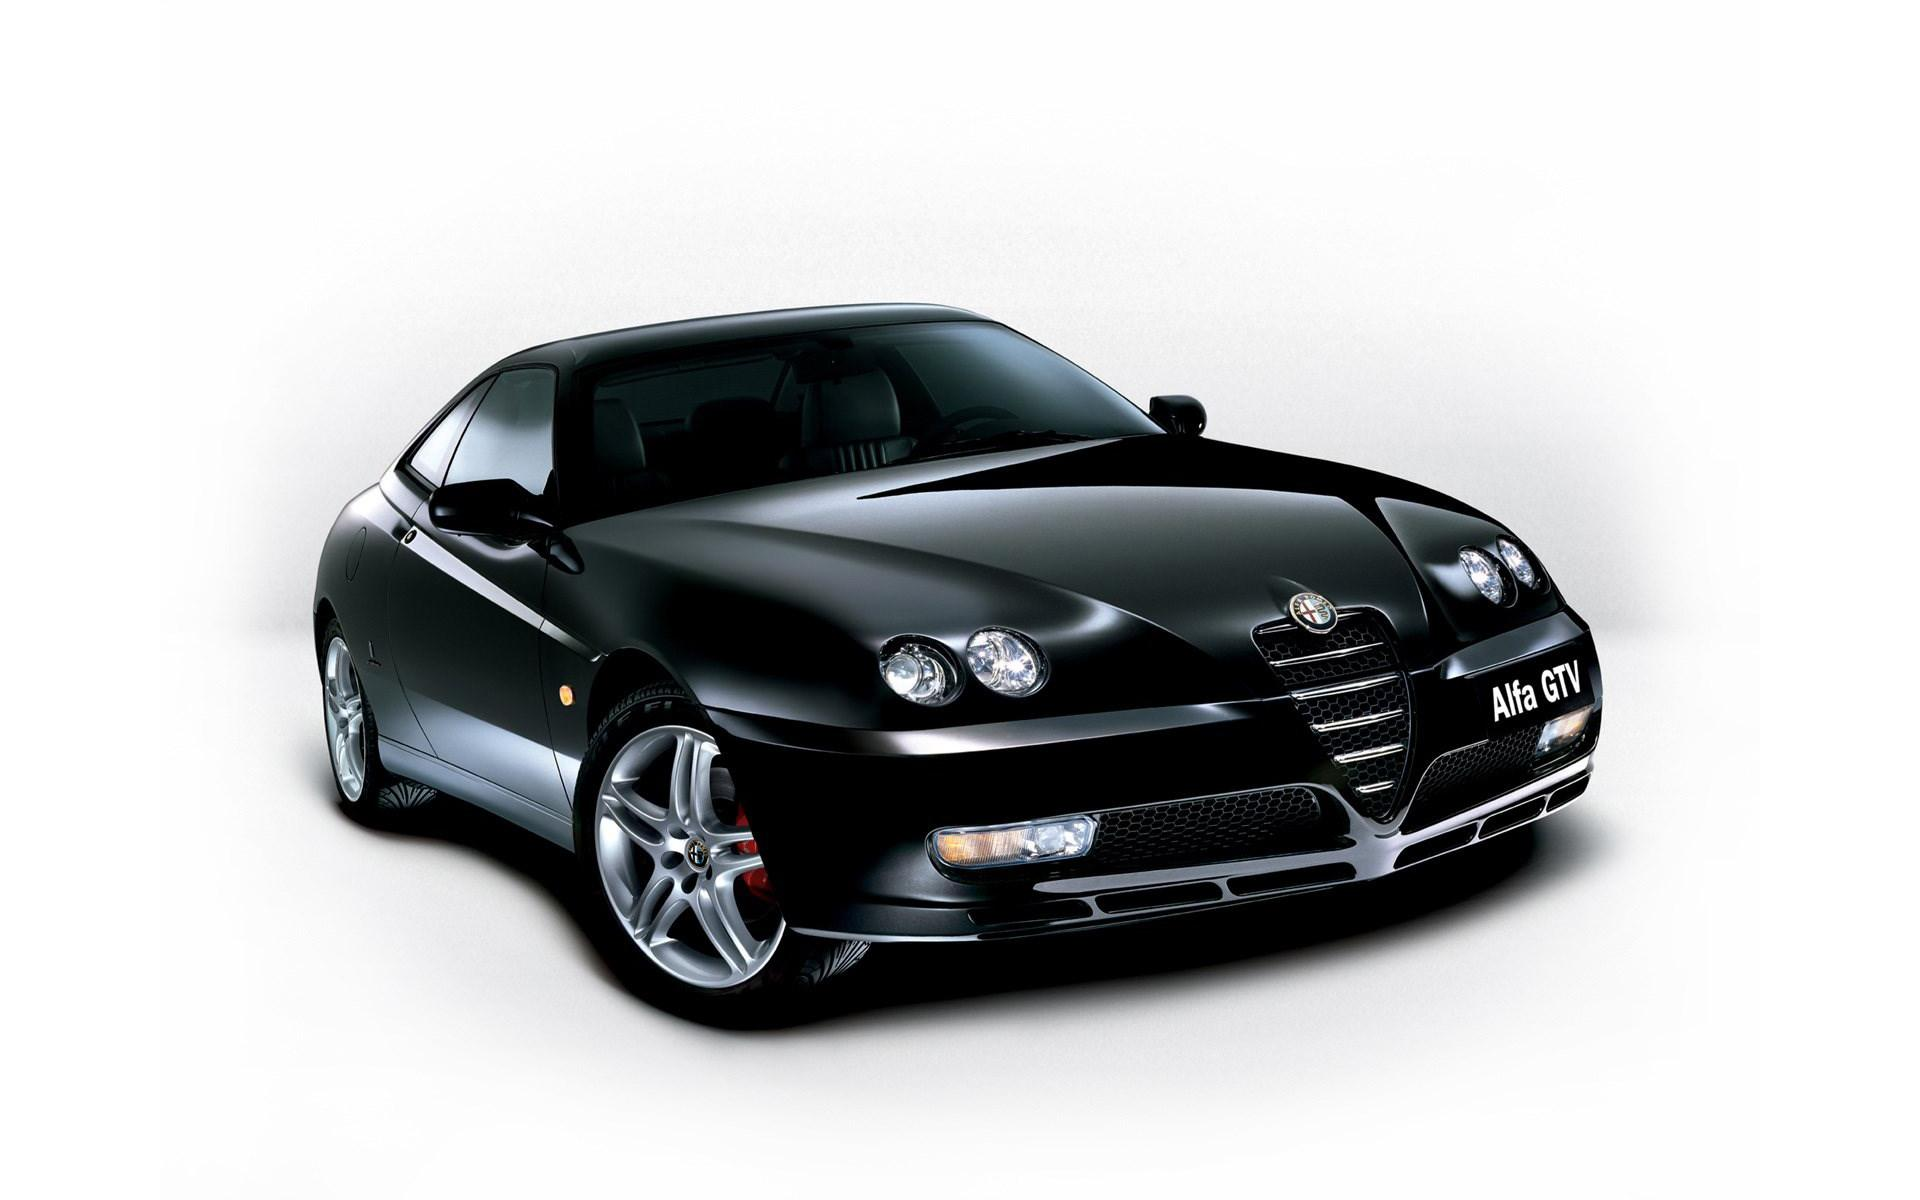 1920x1200 - Alfa Romeo 12C GTS Wallpapers 36